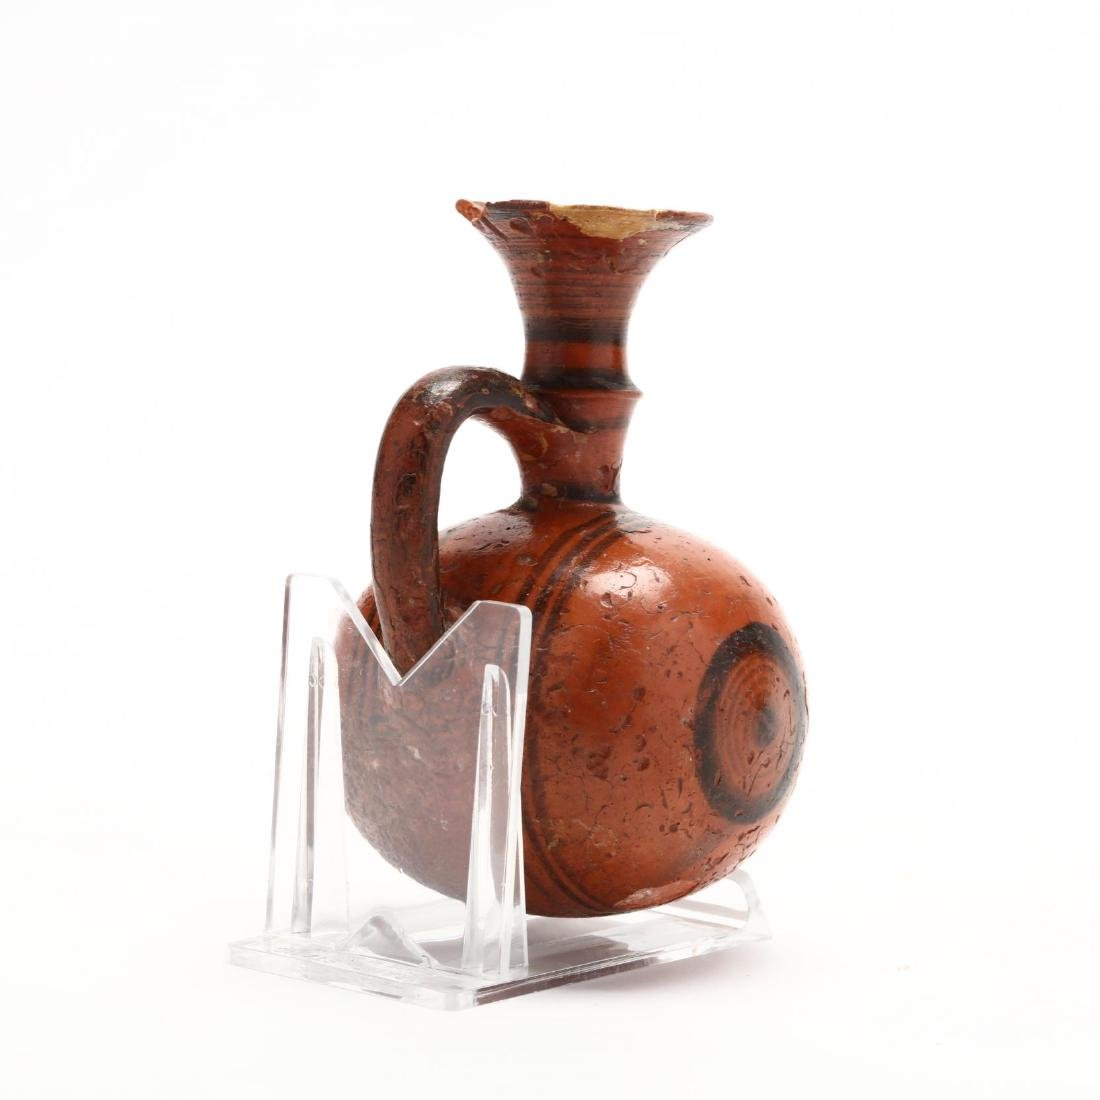 Cypro-Geometric Diminutive Barrel Jar - 4